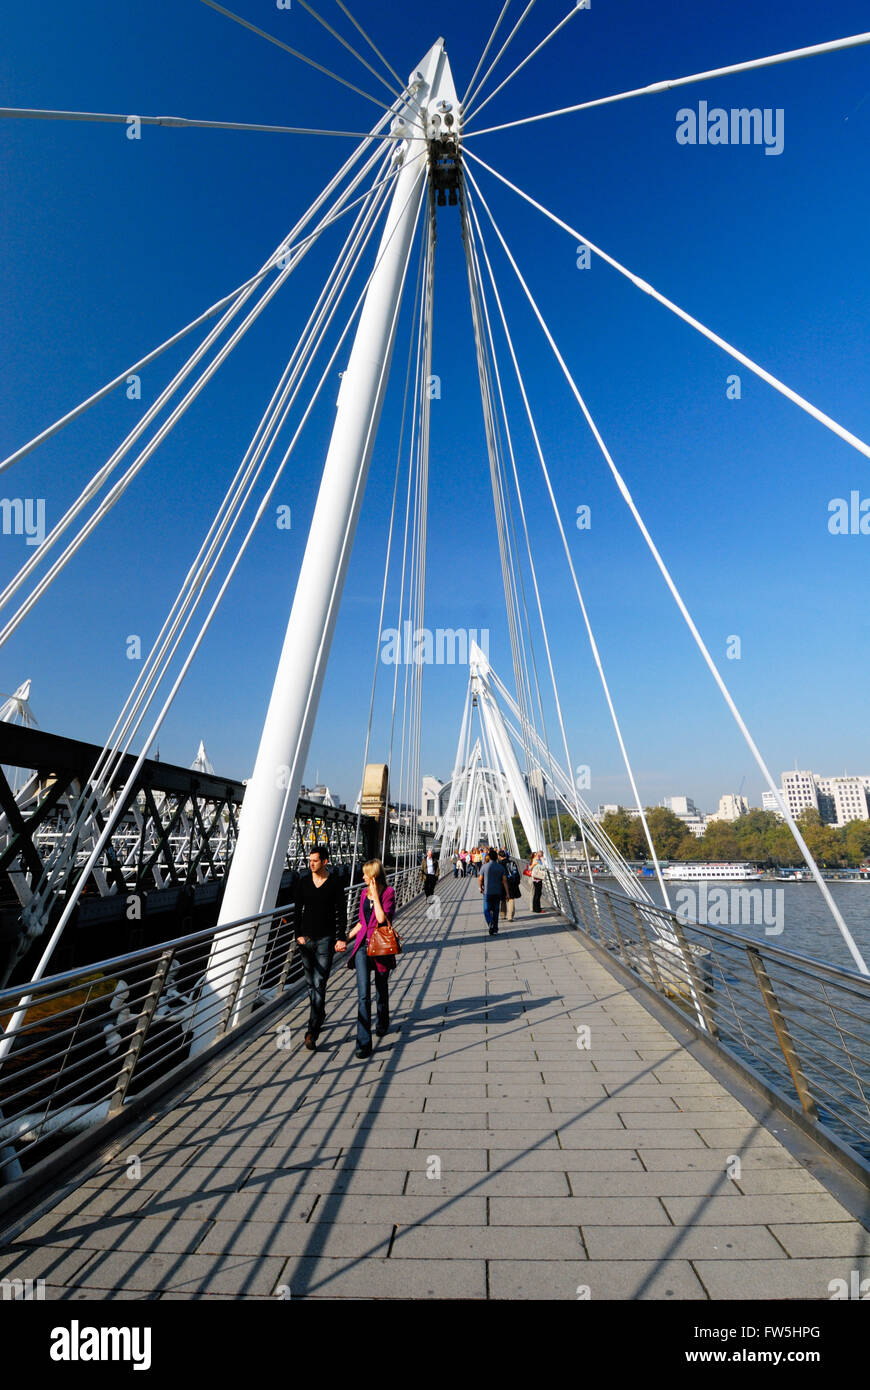 new Hungerford Bridge, foot bridge linking London's South Bank with the West End, with pedestrians crossing - Stock Image